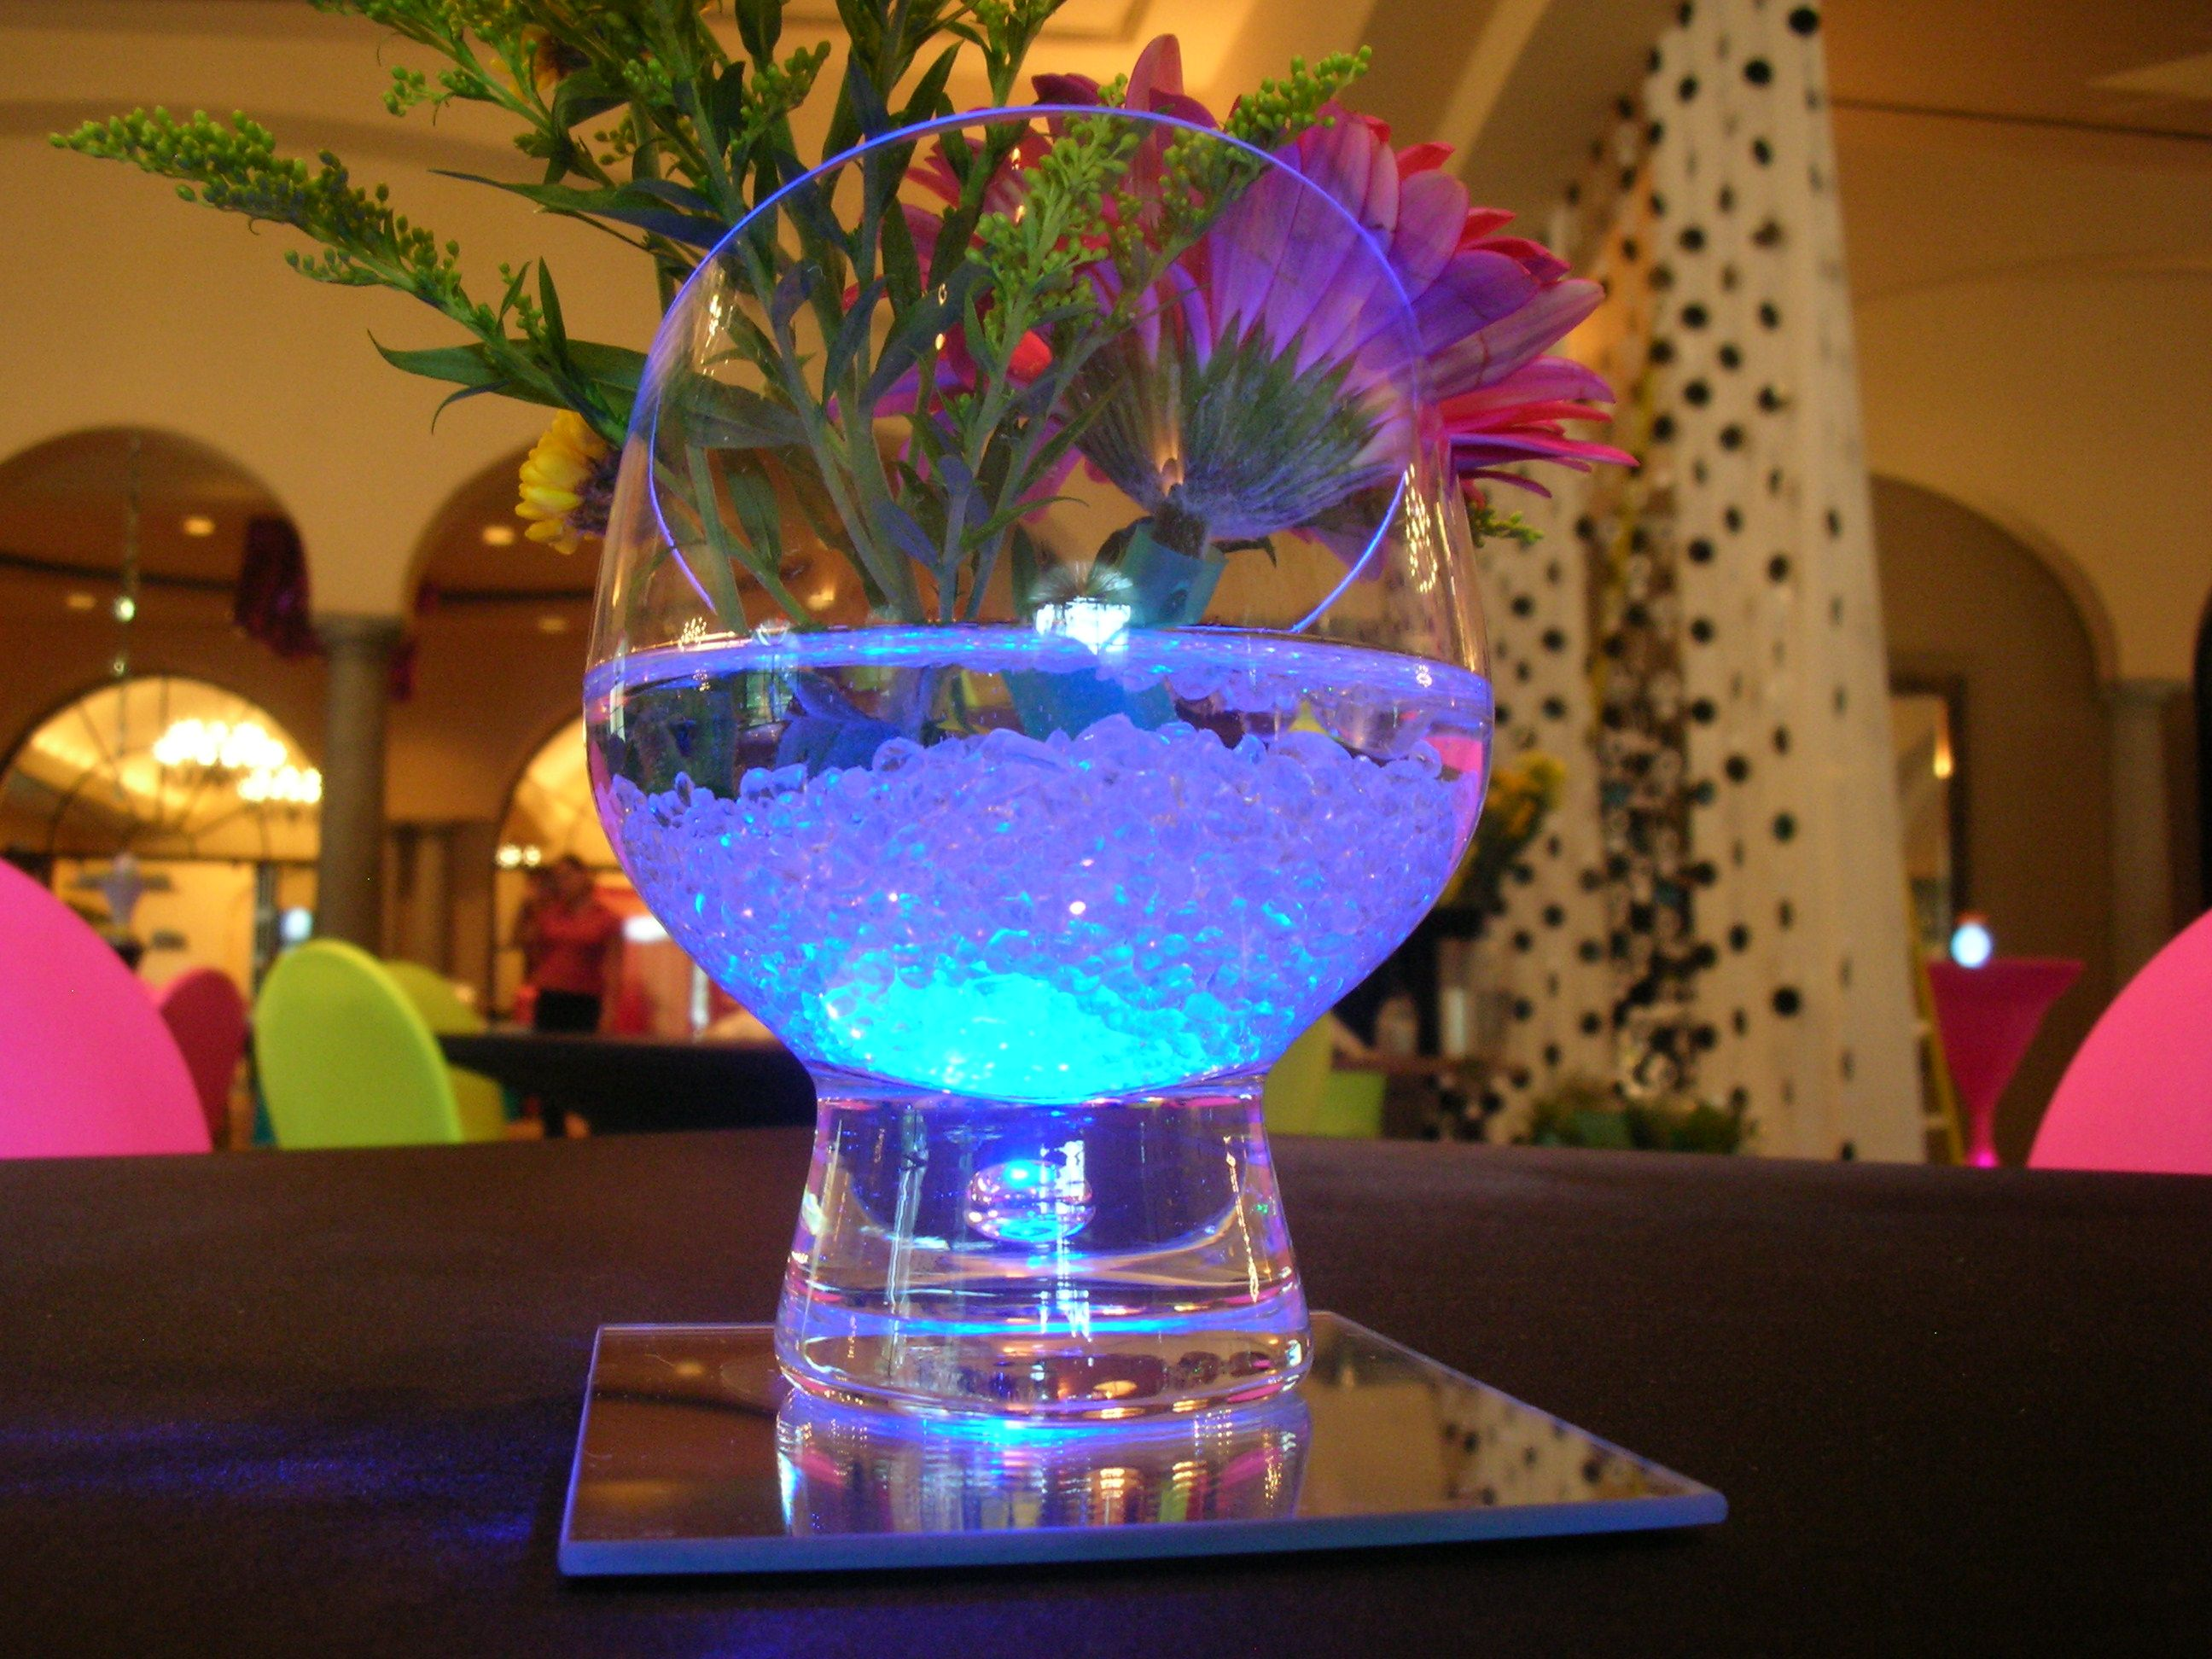 creative gel centerpiece with blue accents for cocktail tables for a sweet 16 or quinceanera in